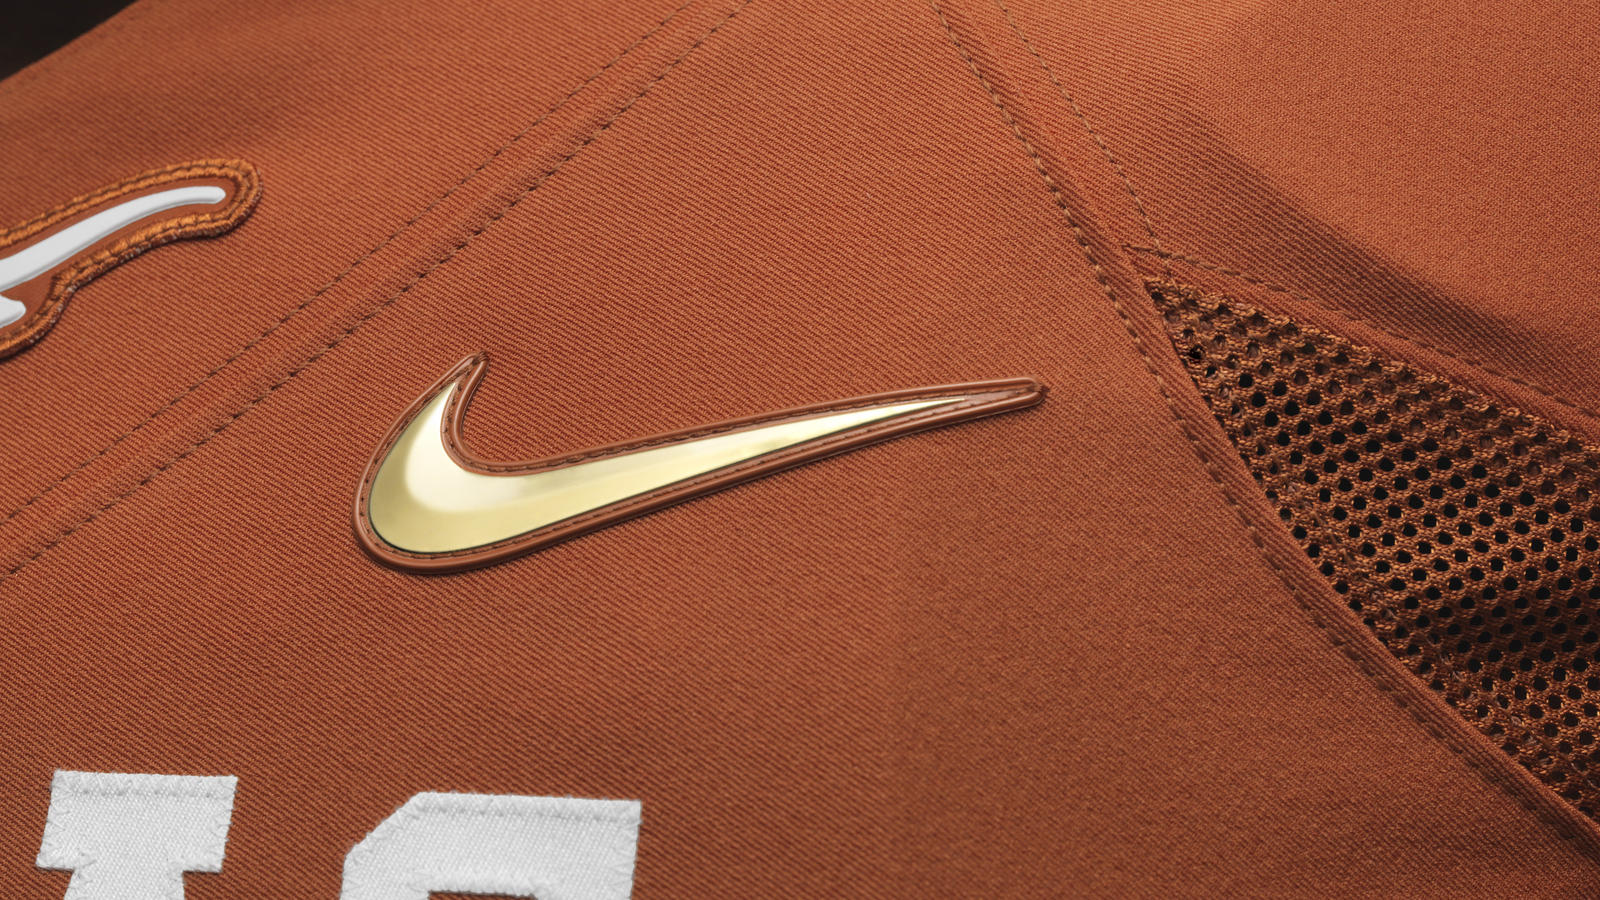 Ncaa Fb13 Uniforms Texas Swoosh 0029